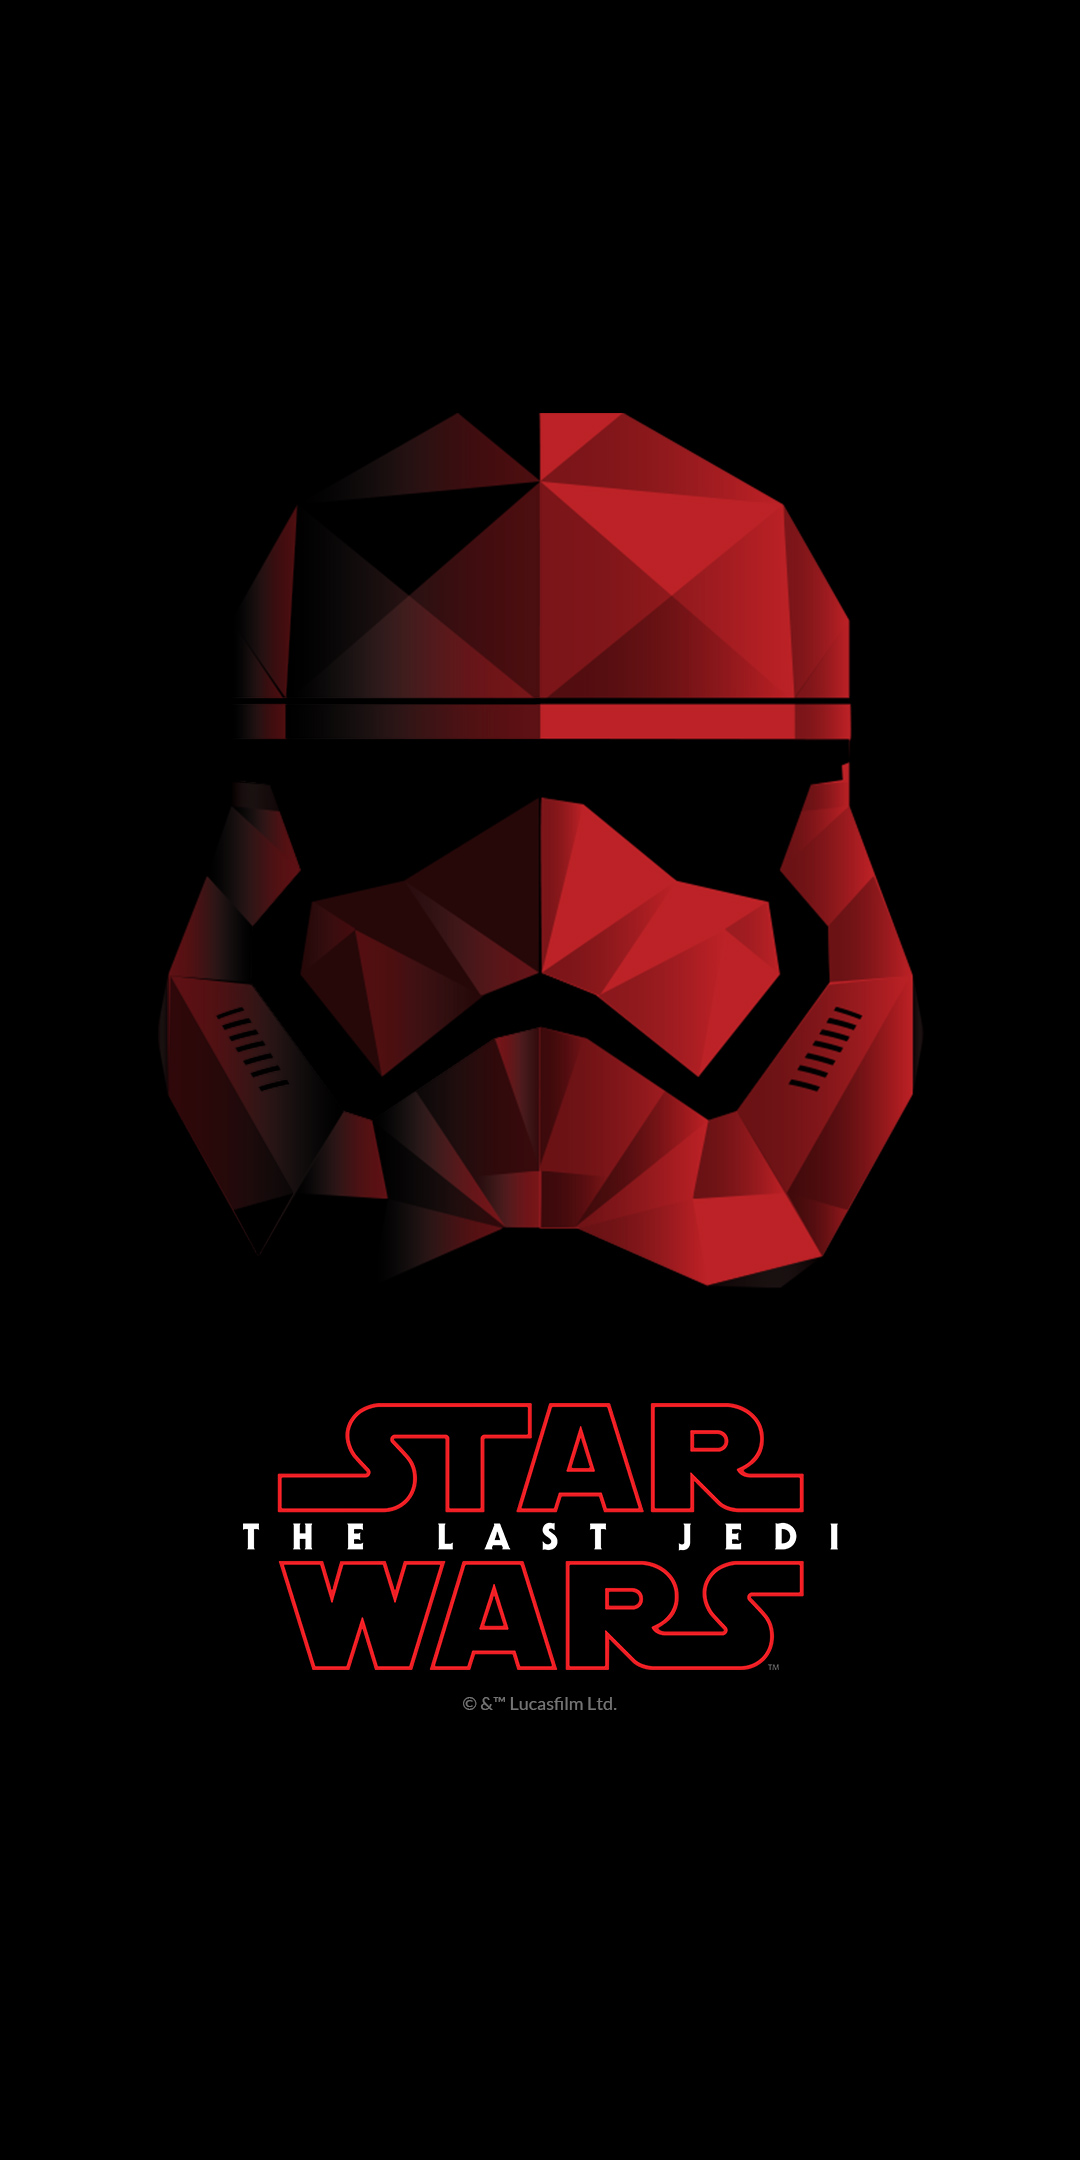 Download the OnePlus 5T Star Wars edition wallpapers right